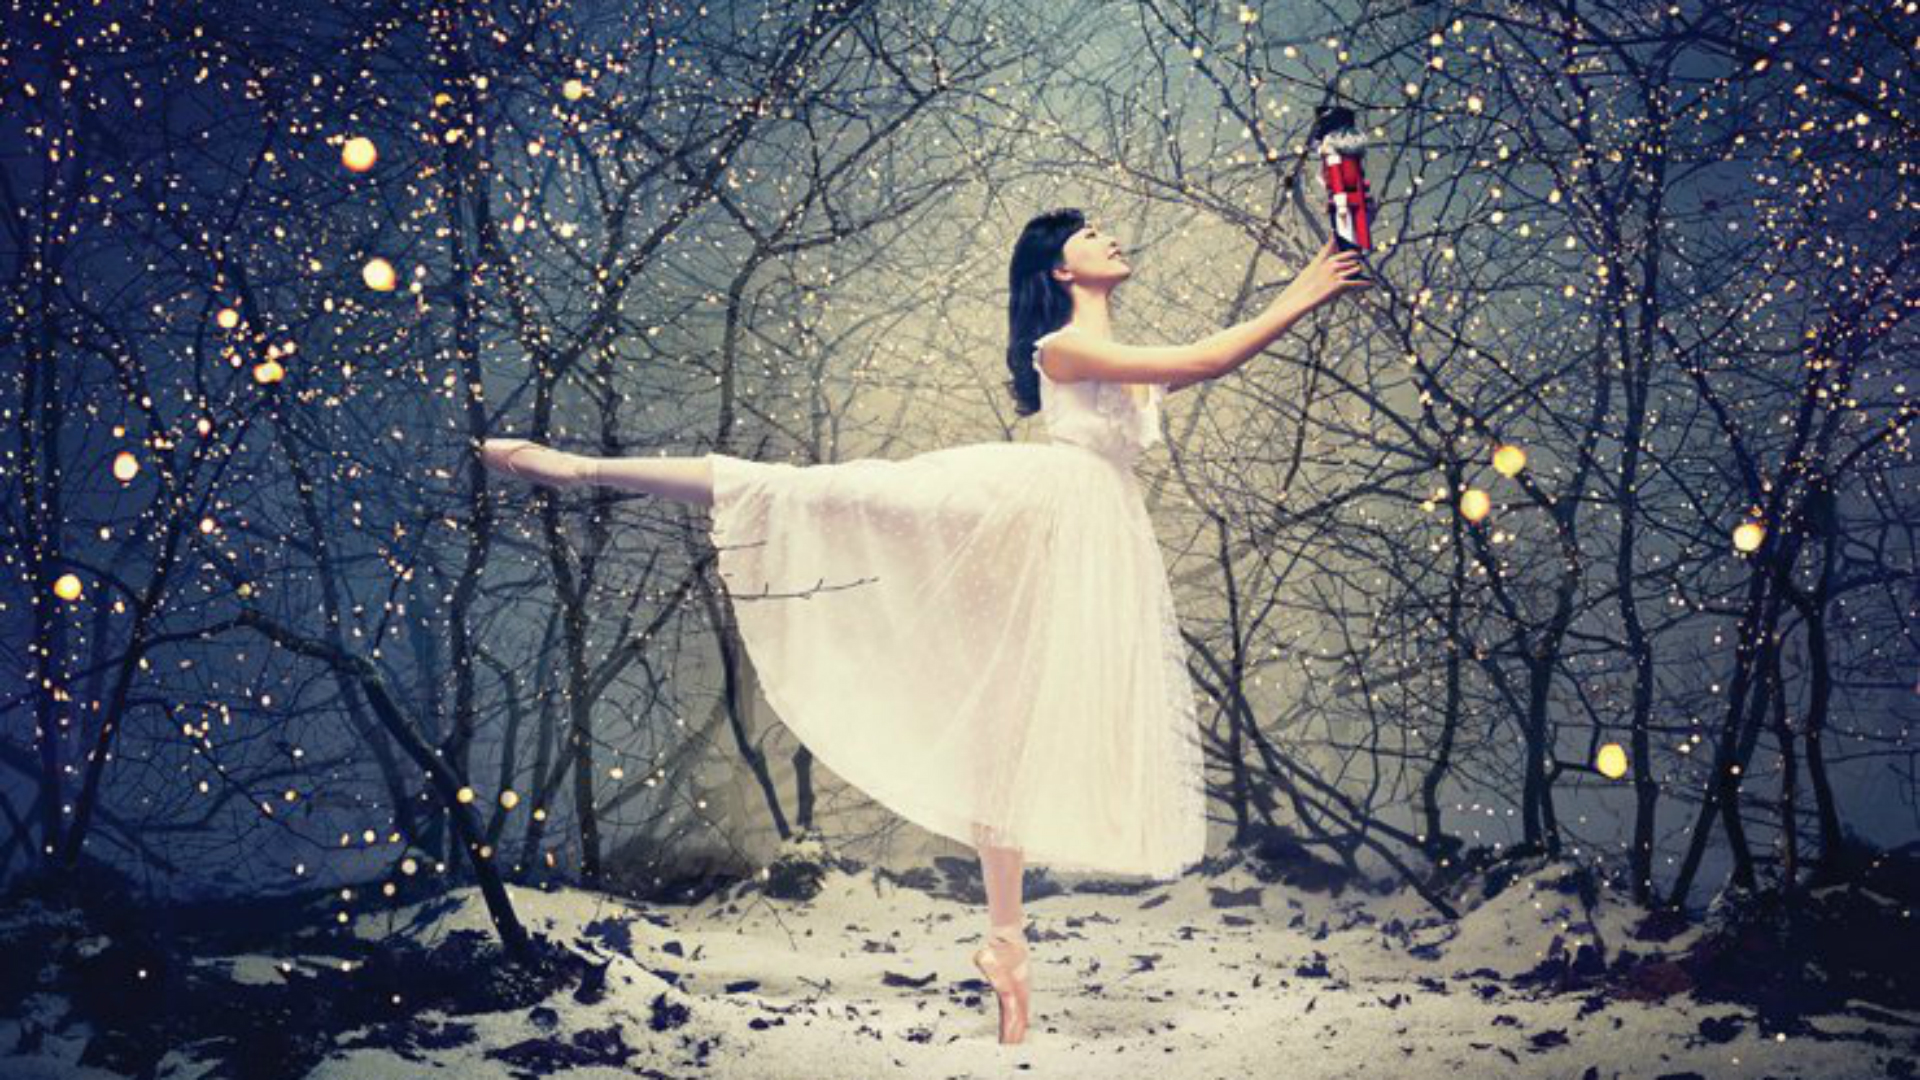 English National Ballet's The Nutcracker at the London Coliseum. Image courtesy of English National Ballet.